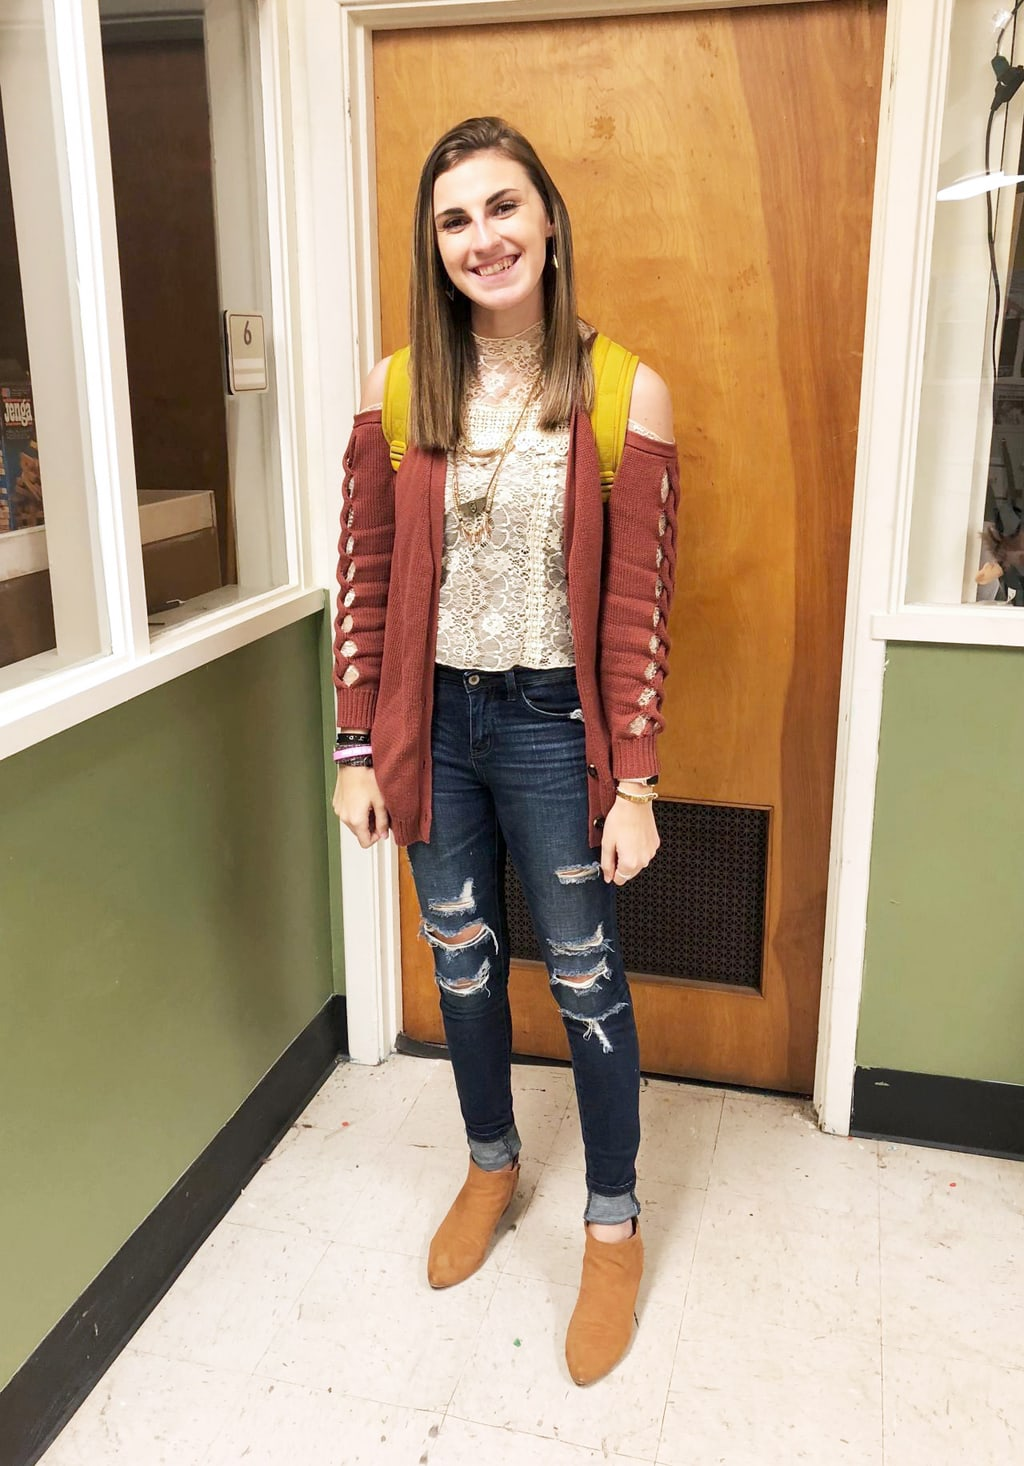 Gentry, a student at West Virginia University, wears a cropped lace high neck blouse with an open shoulder maroon cardigan and ripped jeans.